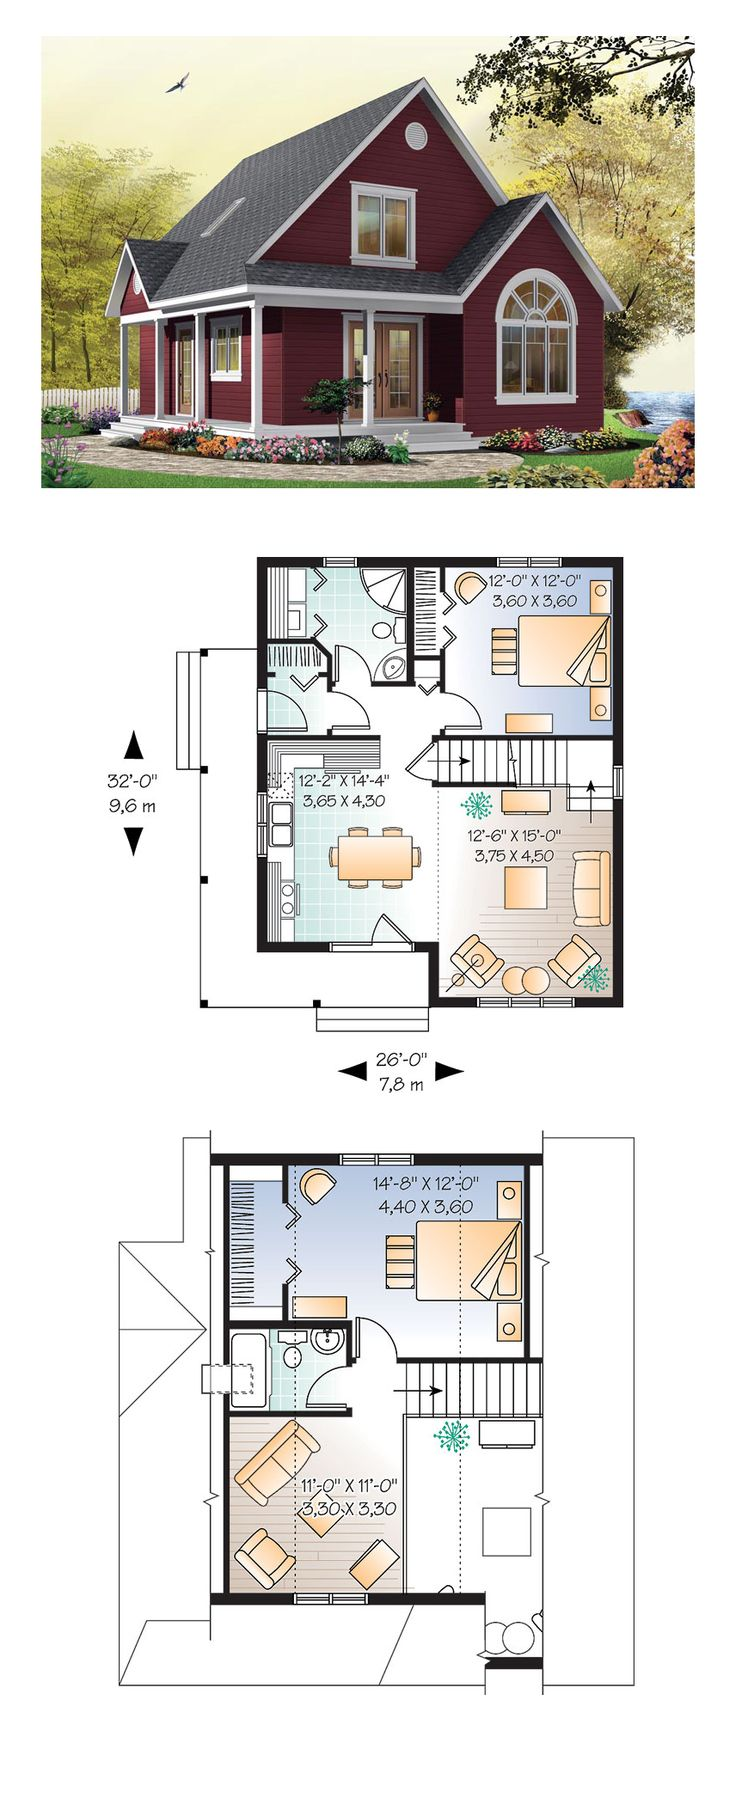 Tiny House Blueprints tiny house on wheels floor plan with single loft Best 25 Small Homes Ideas On Pinterest Small Home Plans Small Cabin Plans And Retirement House Plans